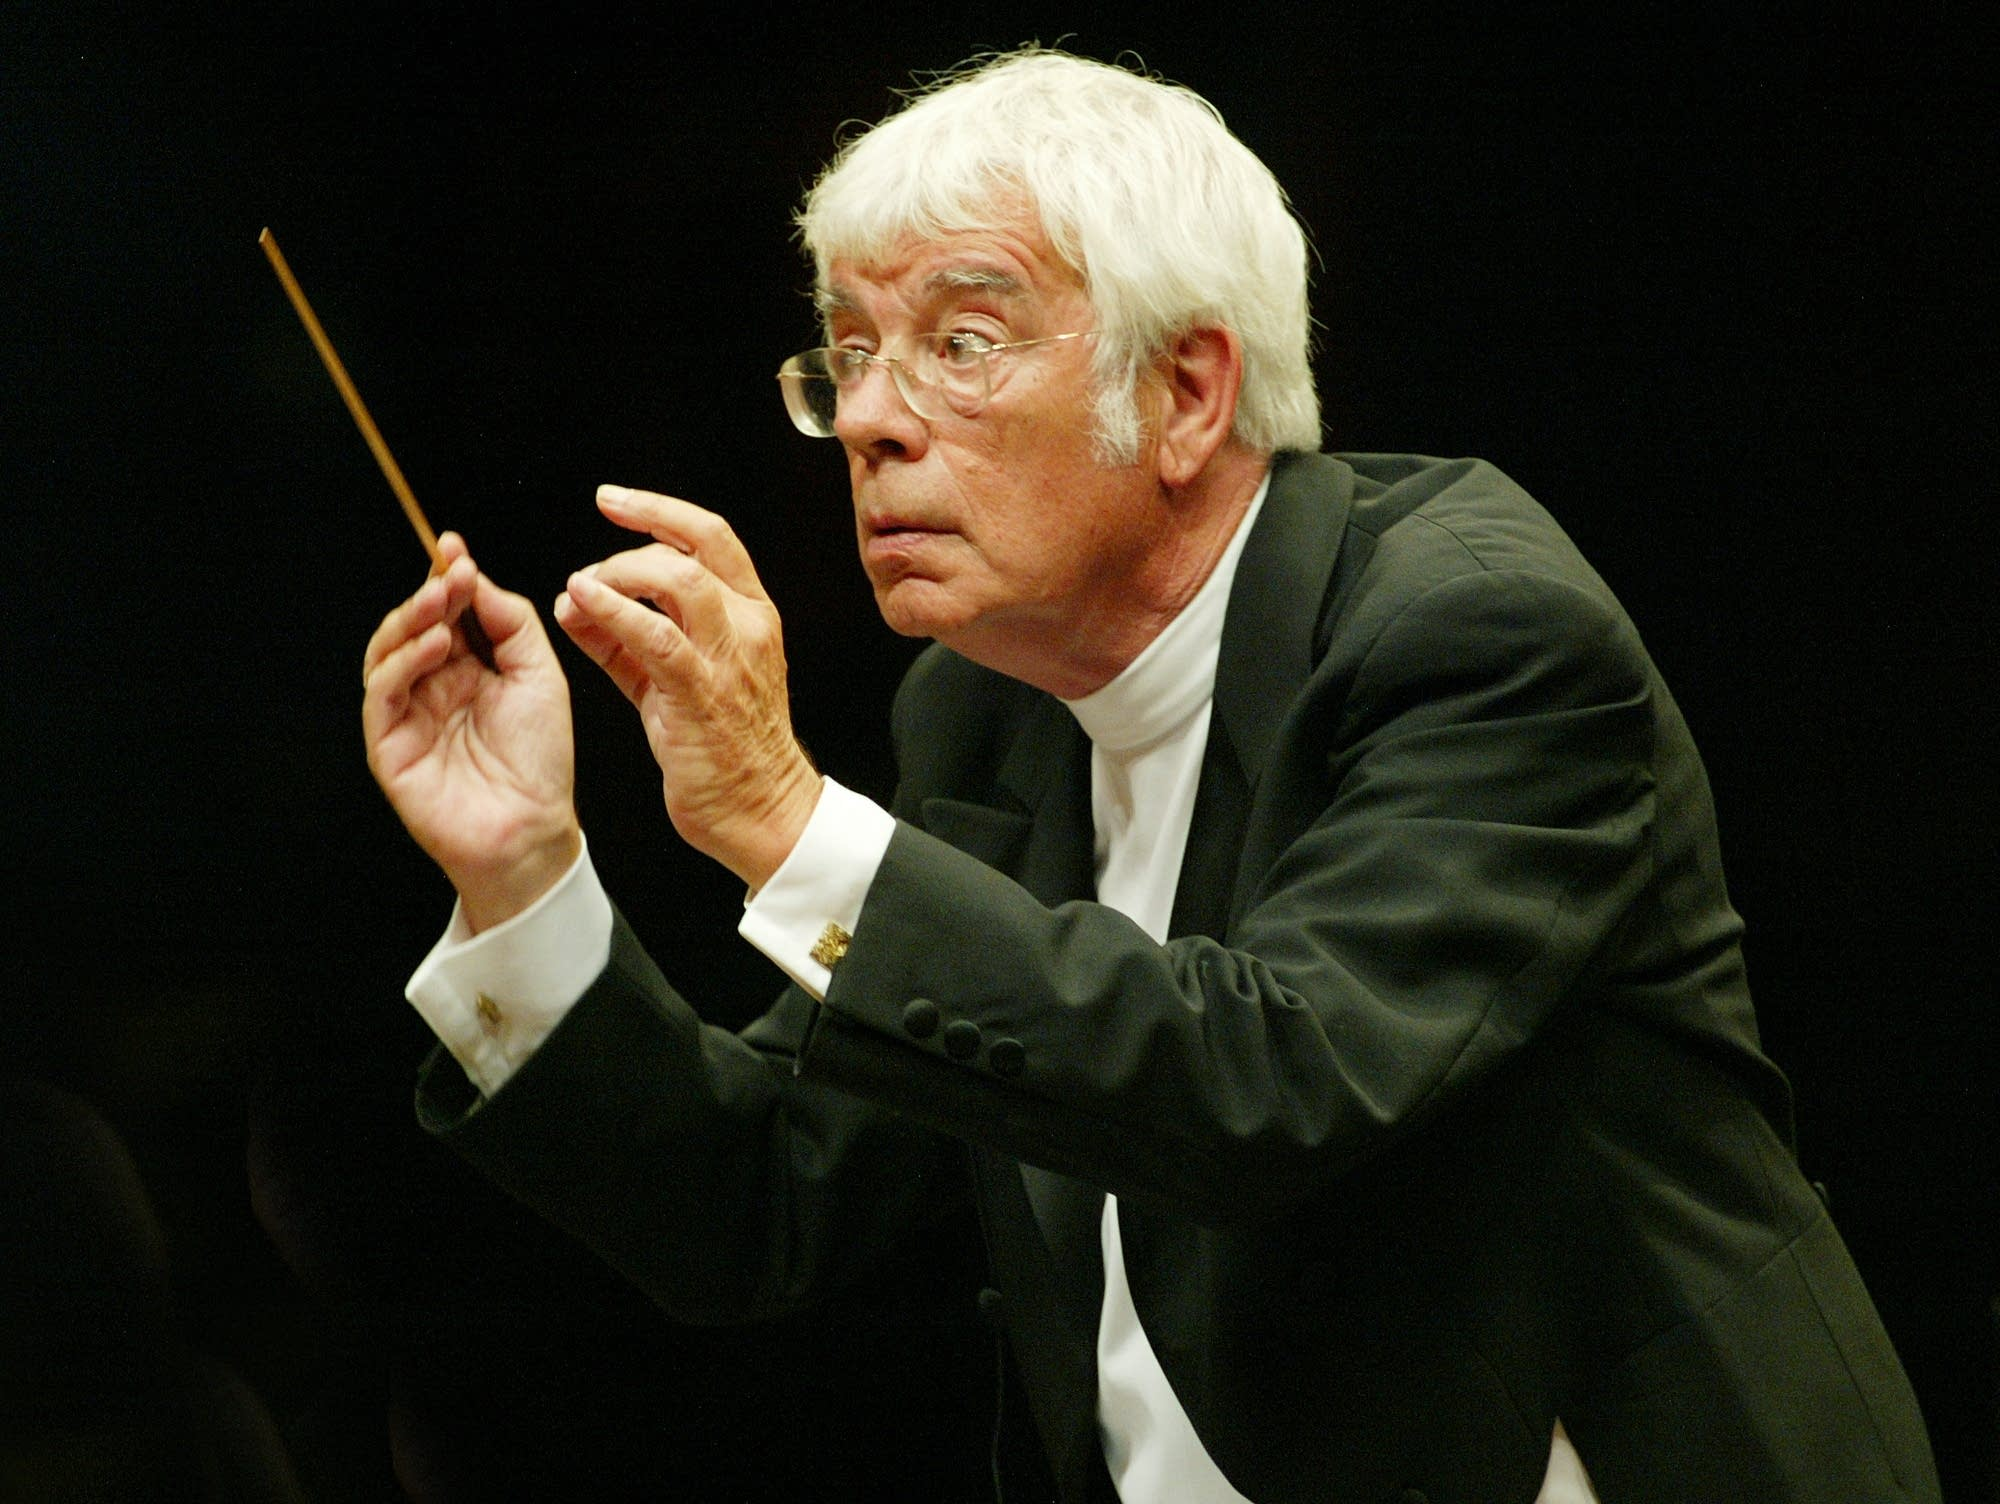 German conductor Helmuth Rilling